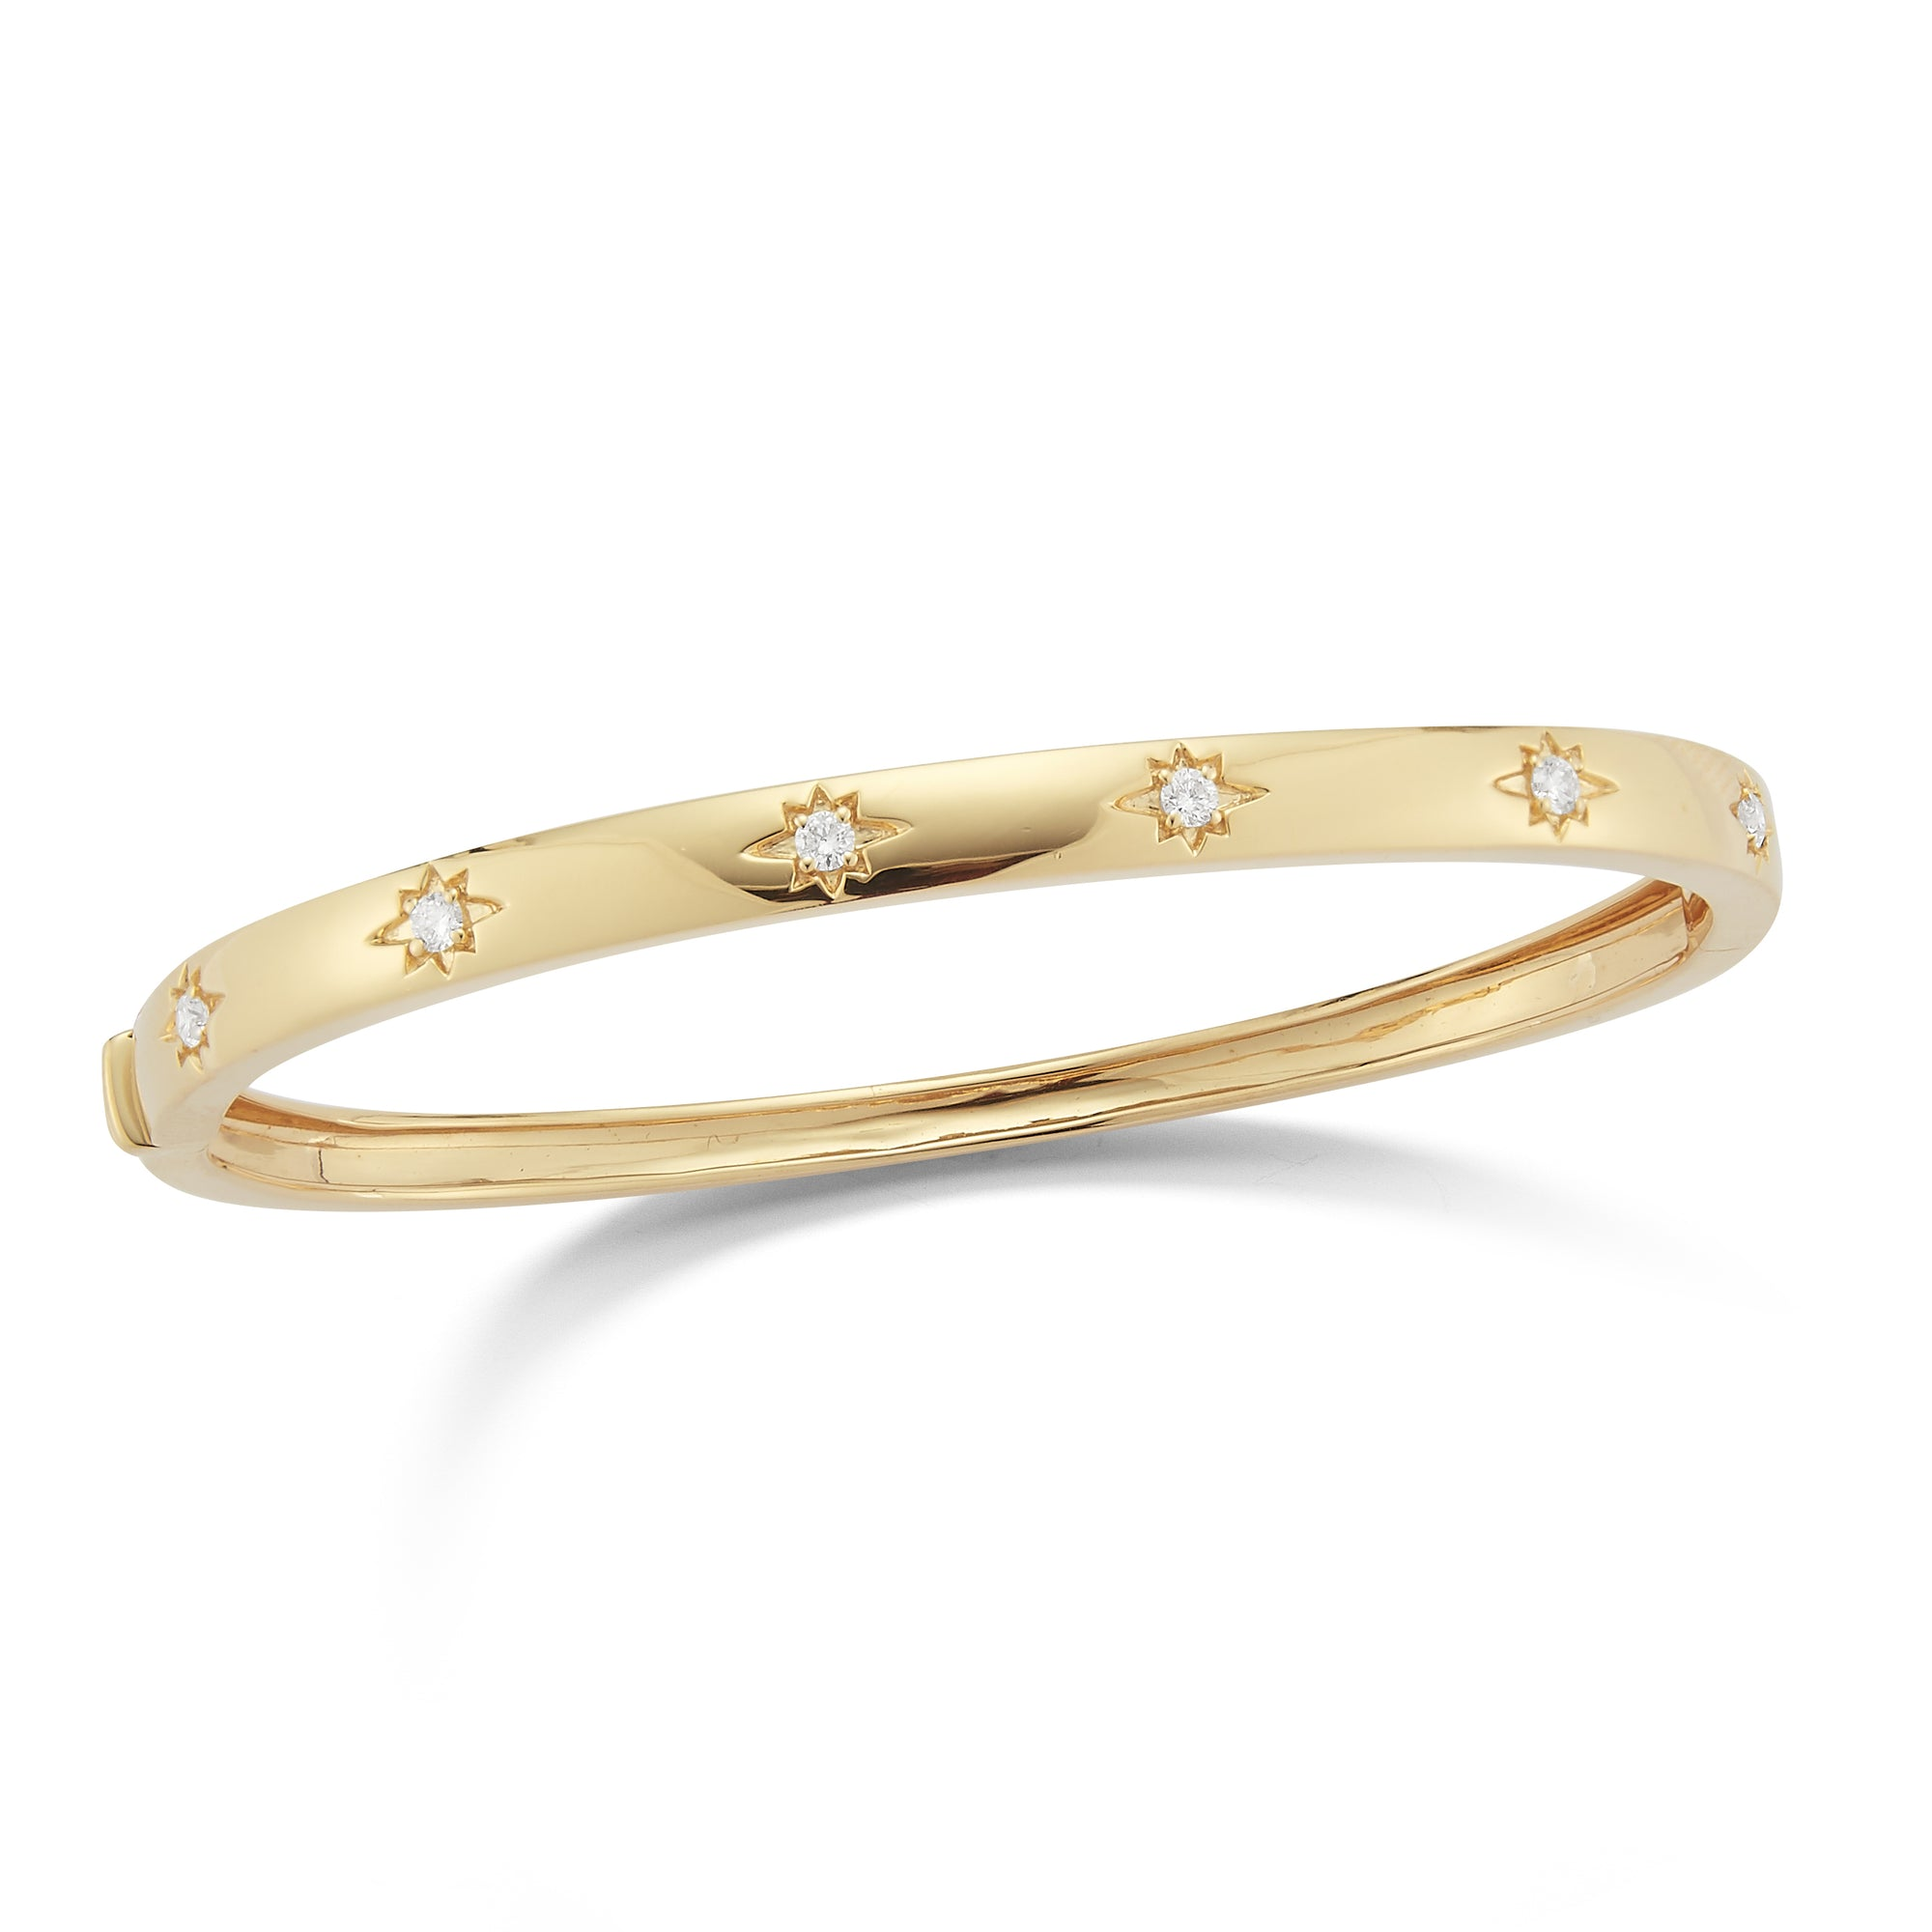 Diamond Starburst Bangle Bracelet